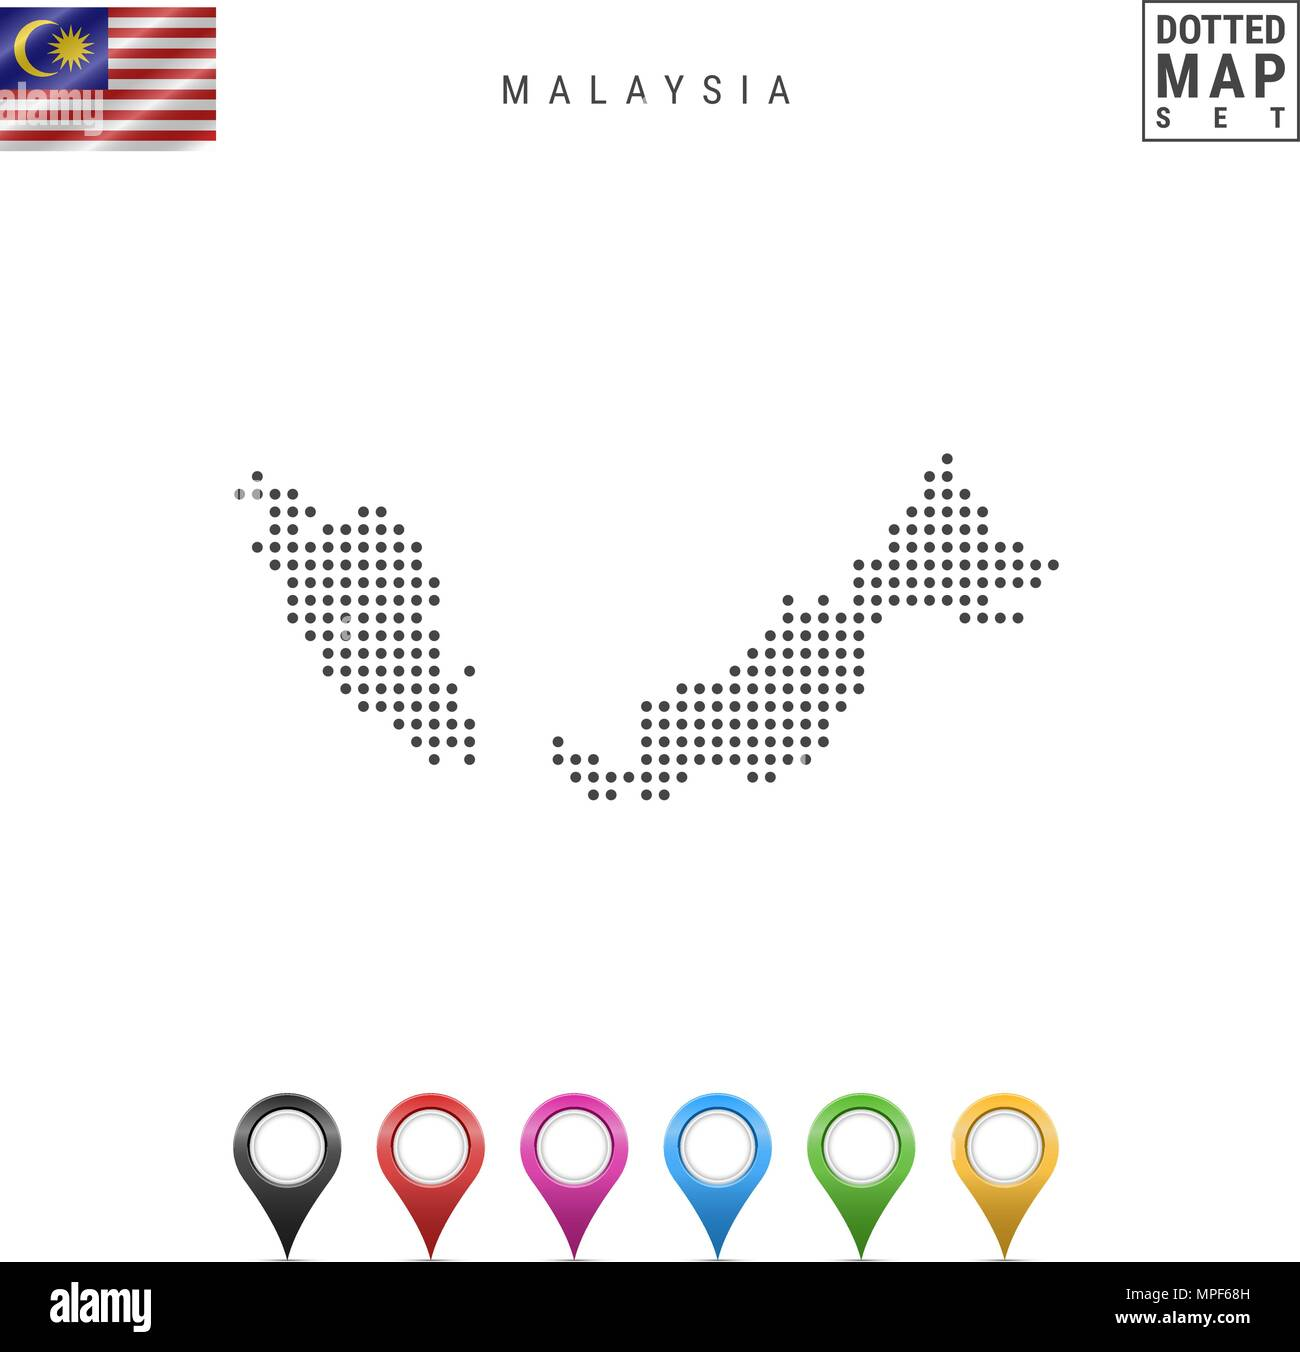 Vector Dotted Map of Malaysia. Simple Silhouette of Malaysia. National Flag of Malaysia. Set of Multicolored Map Markers - Stock Image